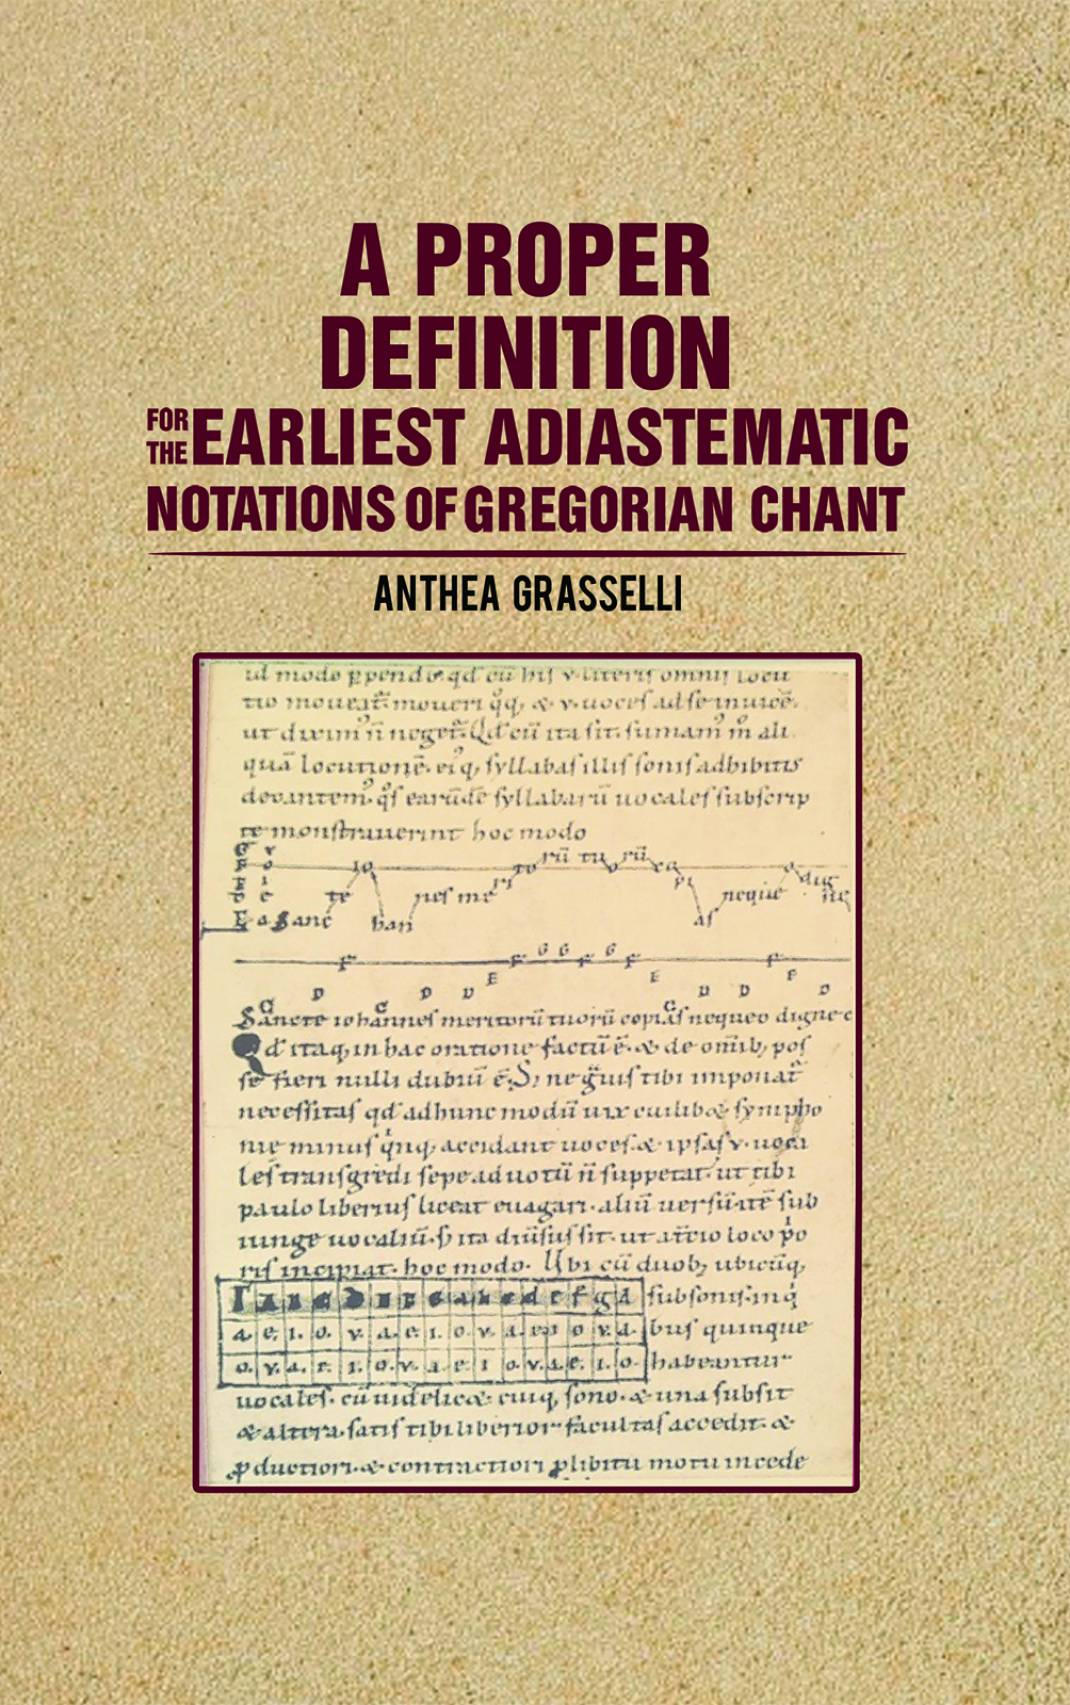 A Proper Definition for the Earliest Adiastematic Notations of